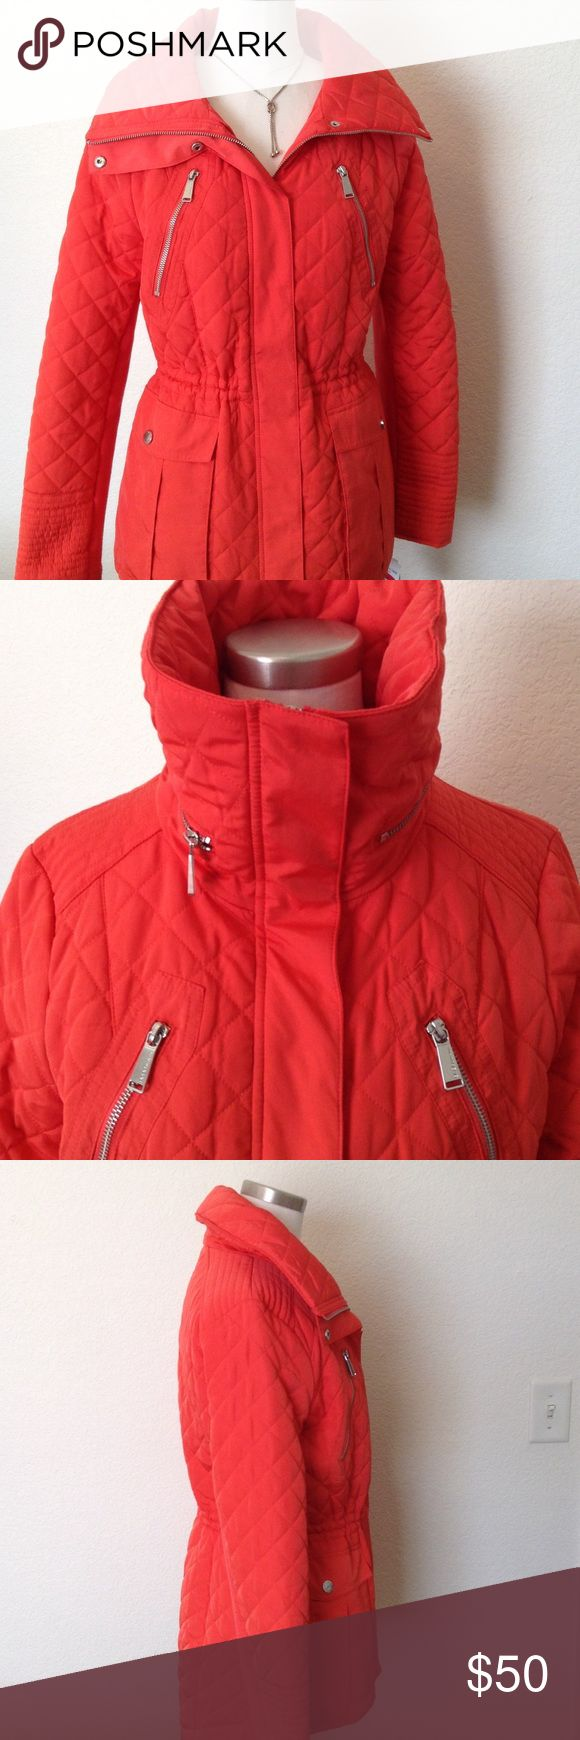 🆕NWT BCBGeneration coral quilted ski jacket ❤️ This is a brand new with tags attached  BCBGeneration coral colored quilted ski jacket with a hidden zippered hood in the collar. Has an adjustable cord to cinch at waist and bottom of jacket to keep the cold air out. Stylish and vibrant color, lots of pockets. Everything you could want in a winter or fall jacket❤️ PRICE IS FIRM UNLESS BUNDLED BCBGeneration Jackets & Coats